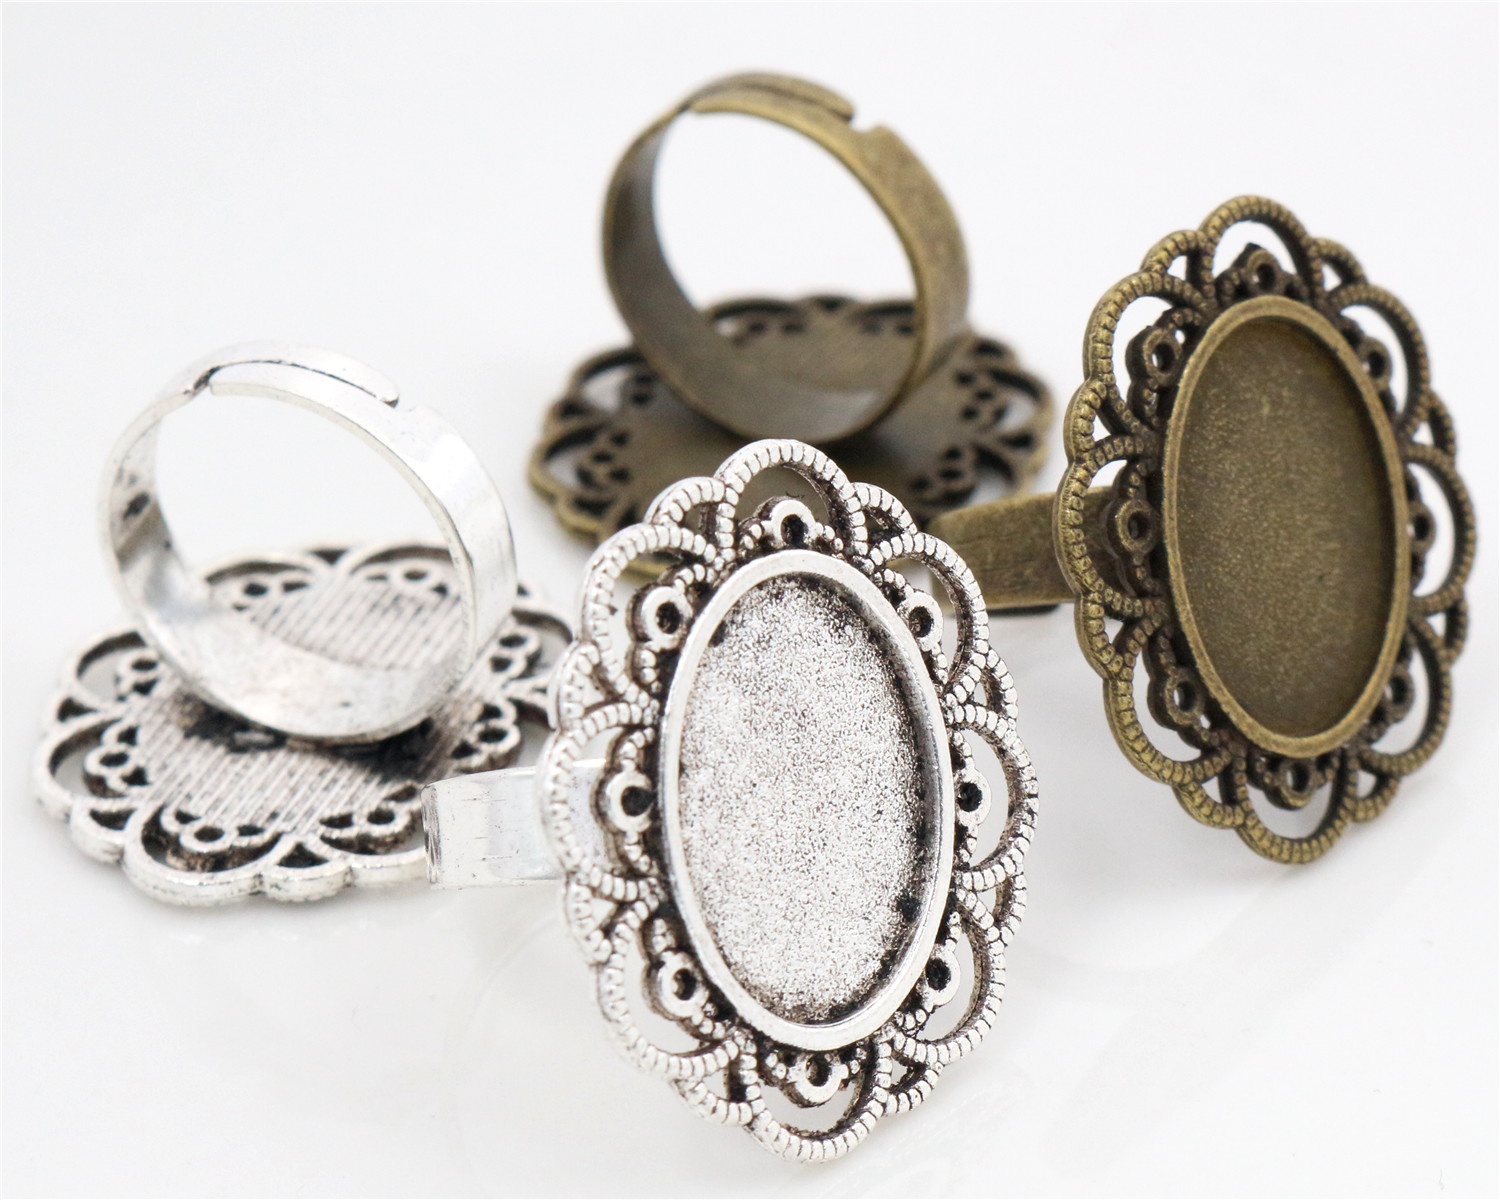 13x18mm 5pcs Antique Silver And Bronze Plated Brass Oval Adjustable Ring Settings Blank/Base,Fit 13x18mm Glass Cabochons13x18mm 5pcs Antique Silver And Bronze Plated Brass Oval Adjustable Ring Settings Blank/Base,Fit 13x18mm Glass Cabochons